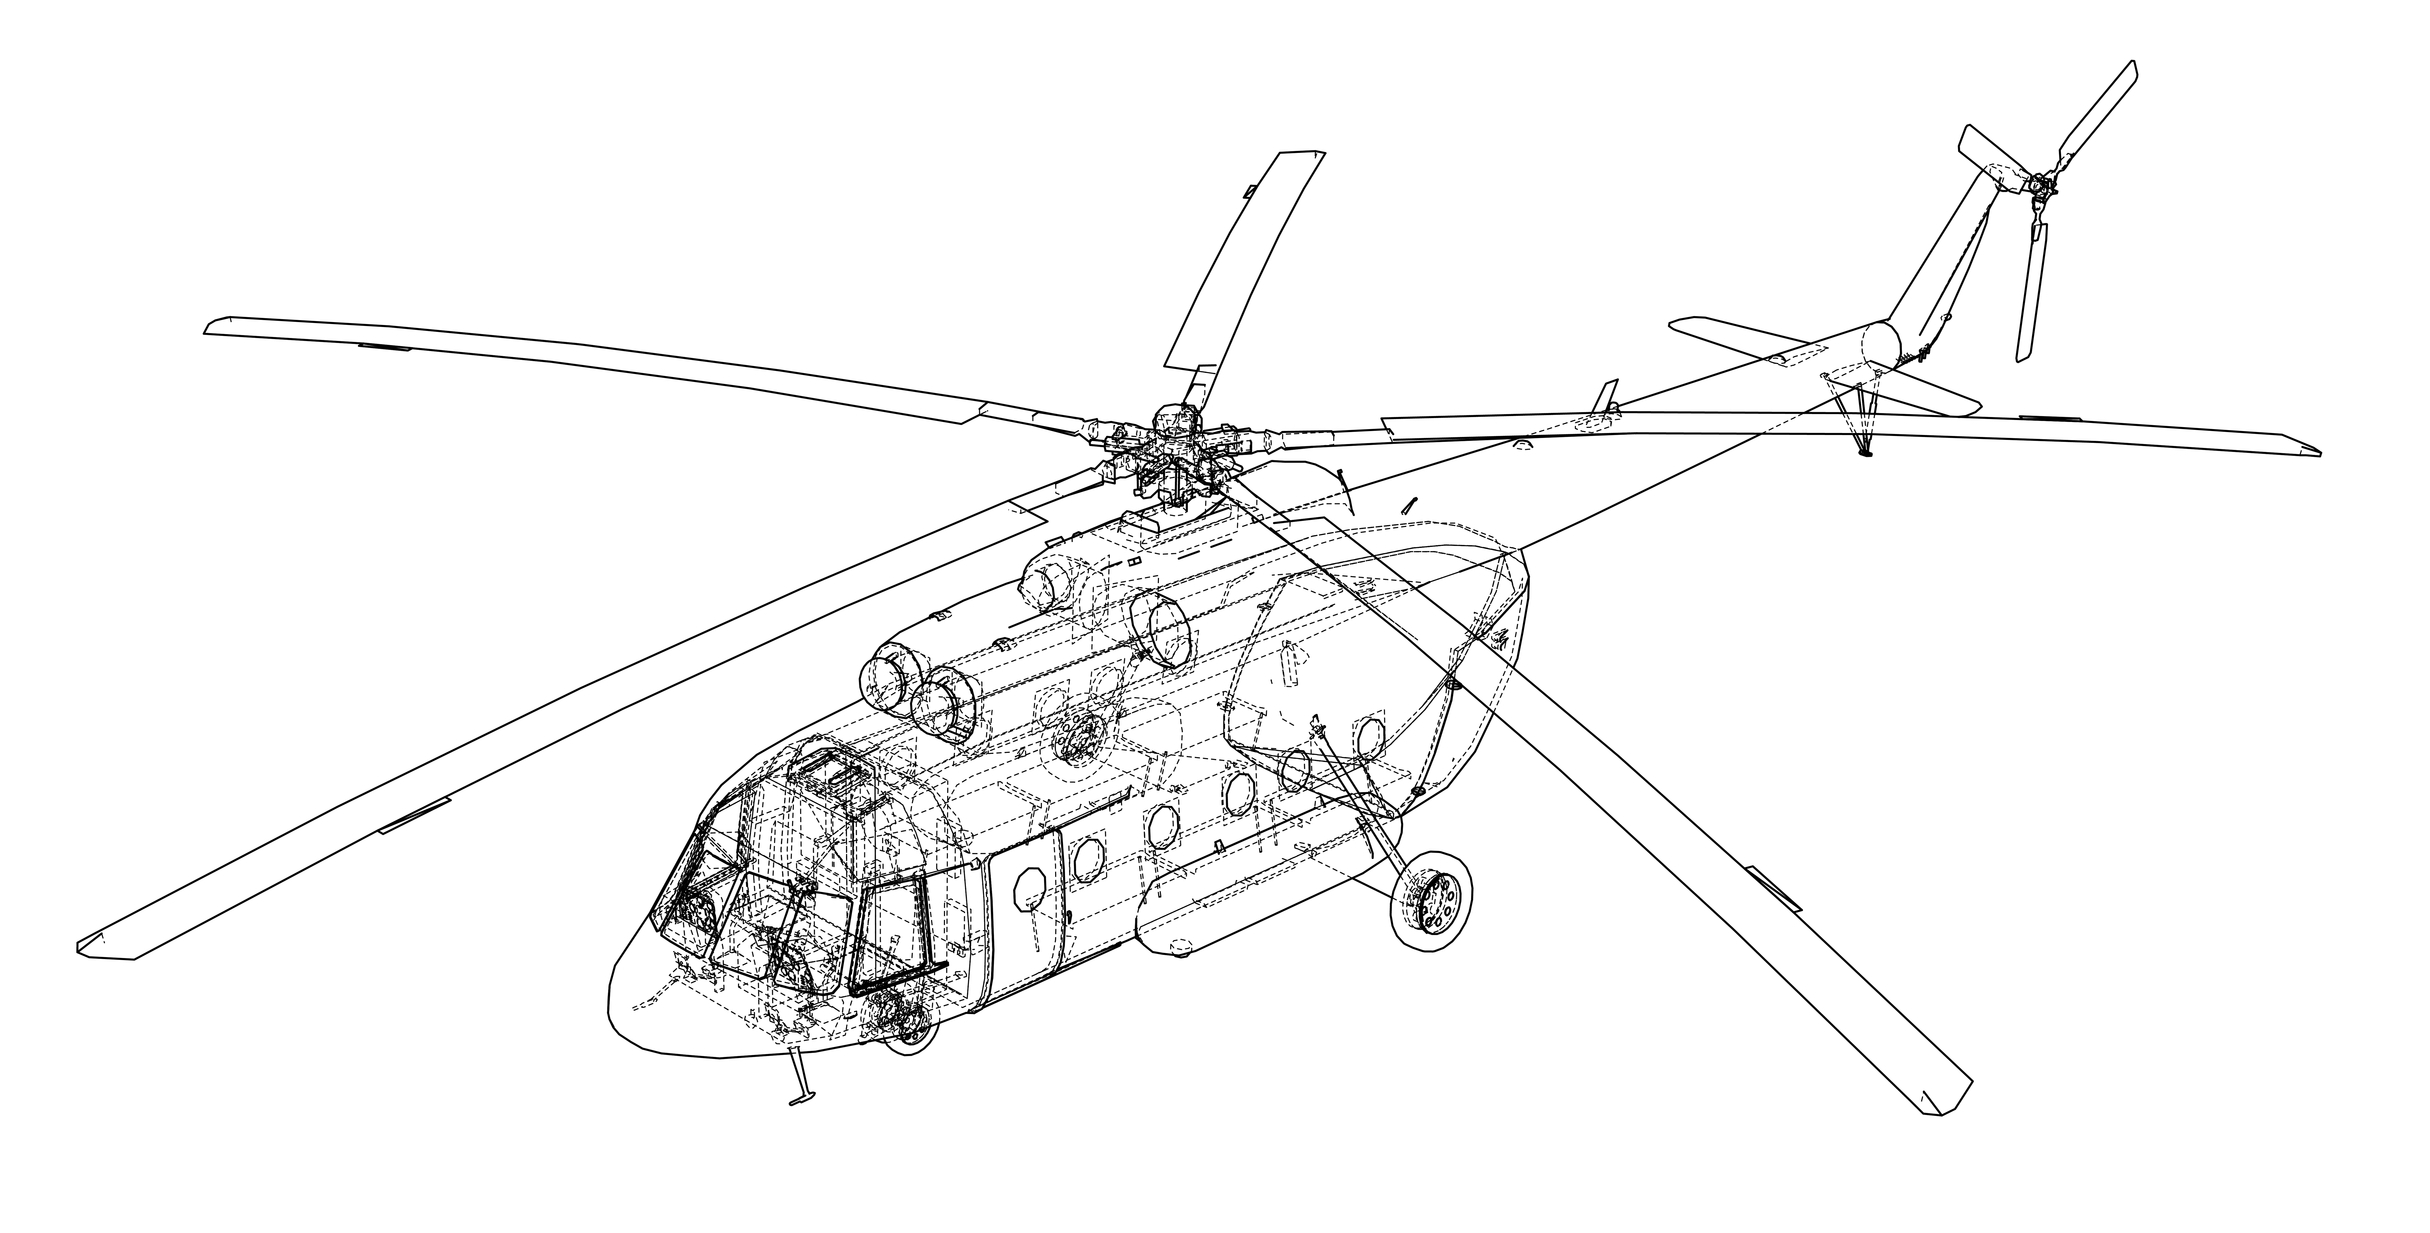 Helicopter Design.jpg